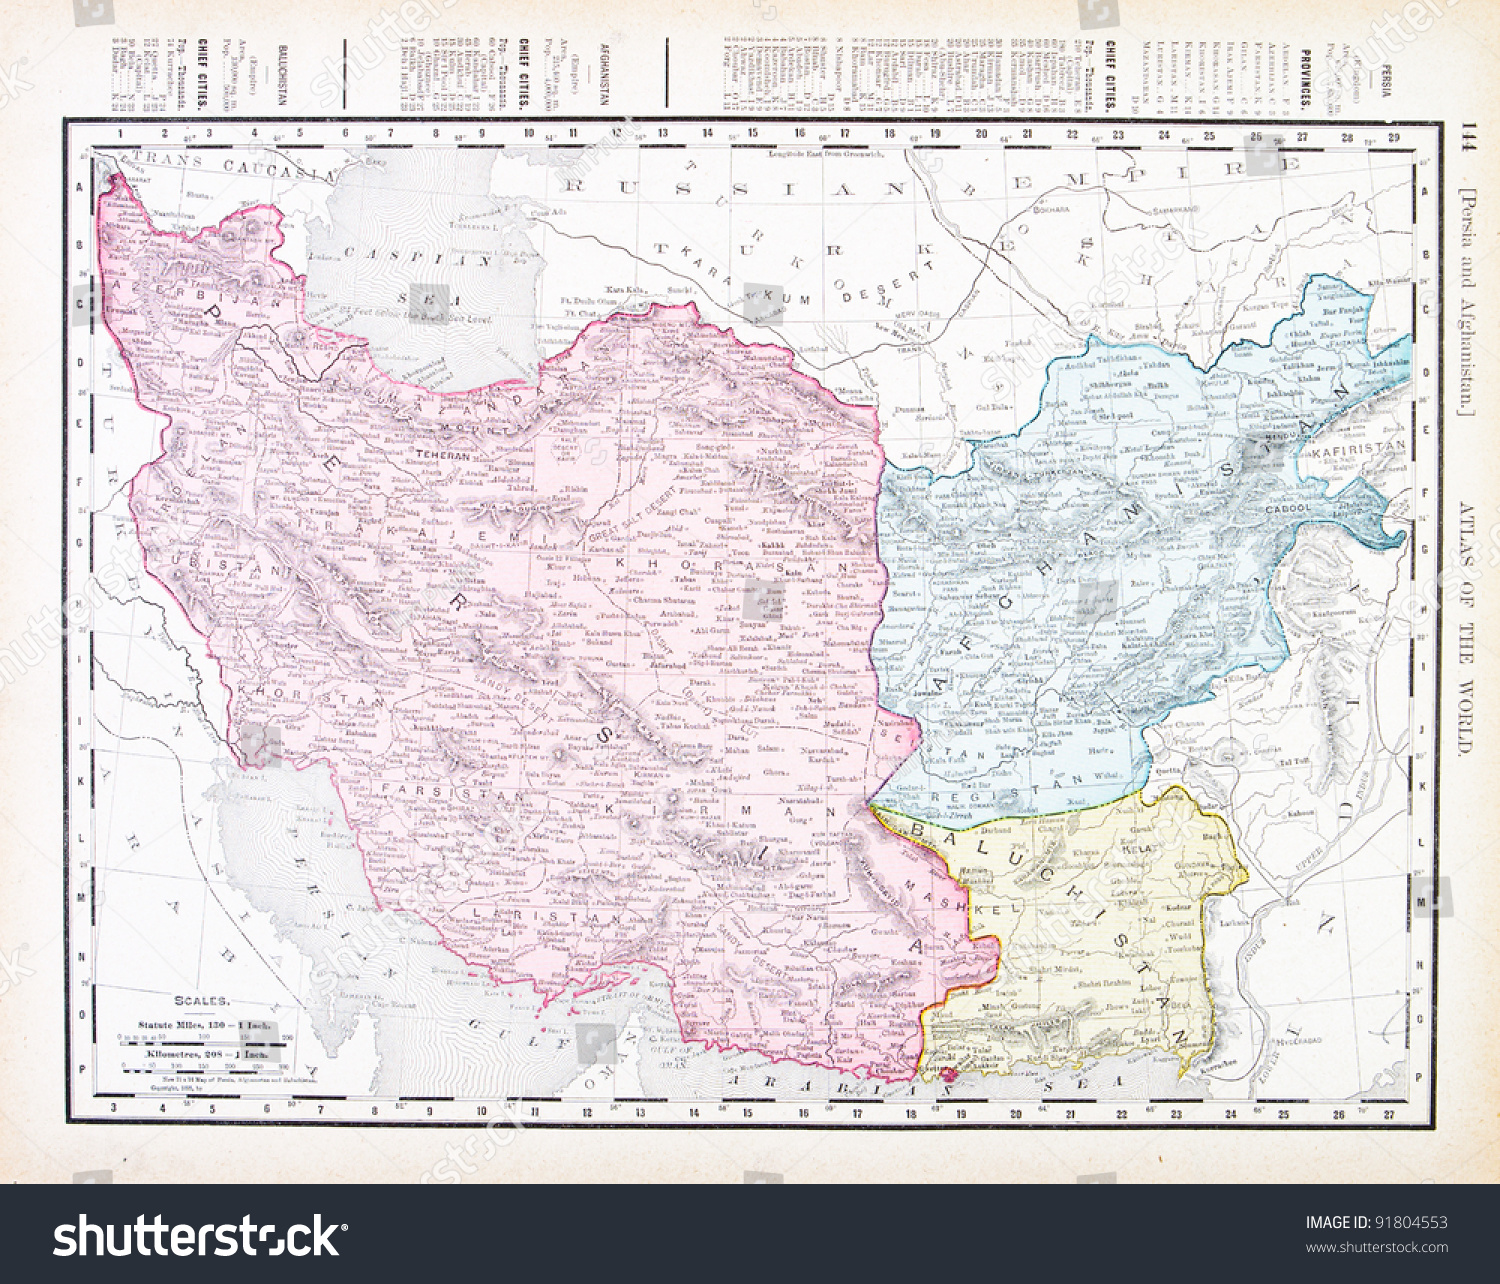 Map iran afghanistan spoffords atlas world stock photo royalty free map iran afghanistan spoffords atlas world stock photo royalty free 91804553 shutterstock gumiabroncs Choice Image